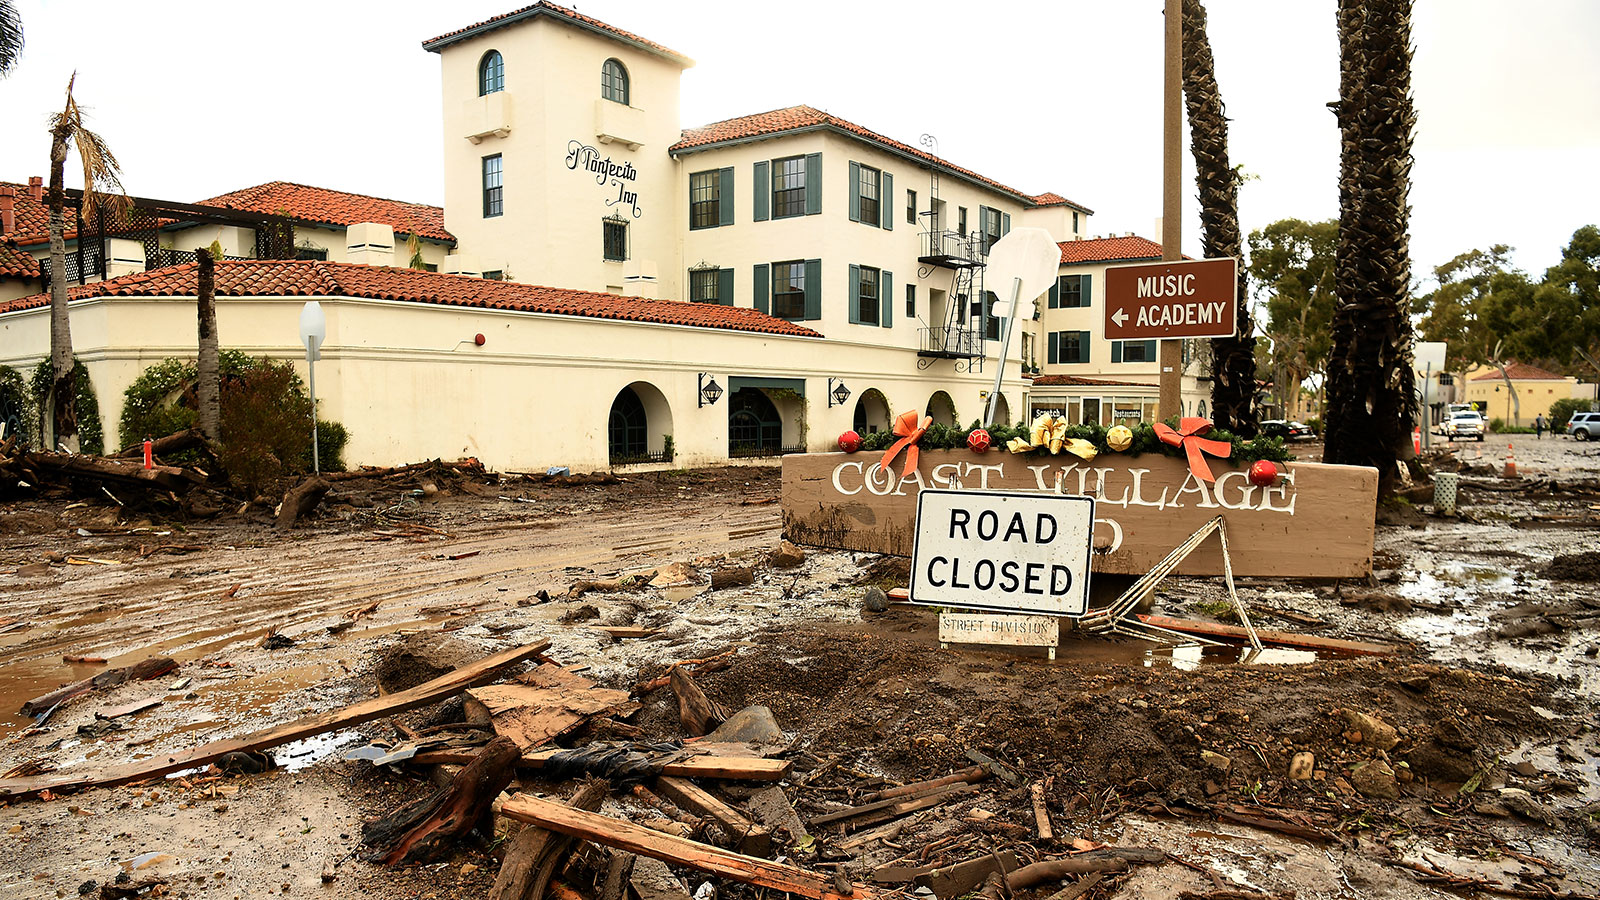 Shocking new photos show devastating extent of California mudslides